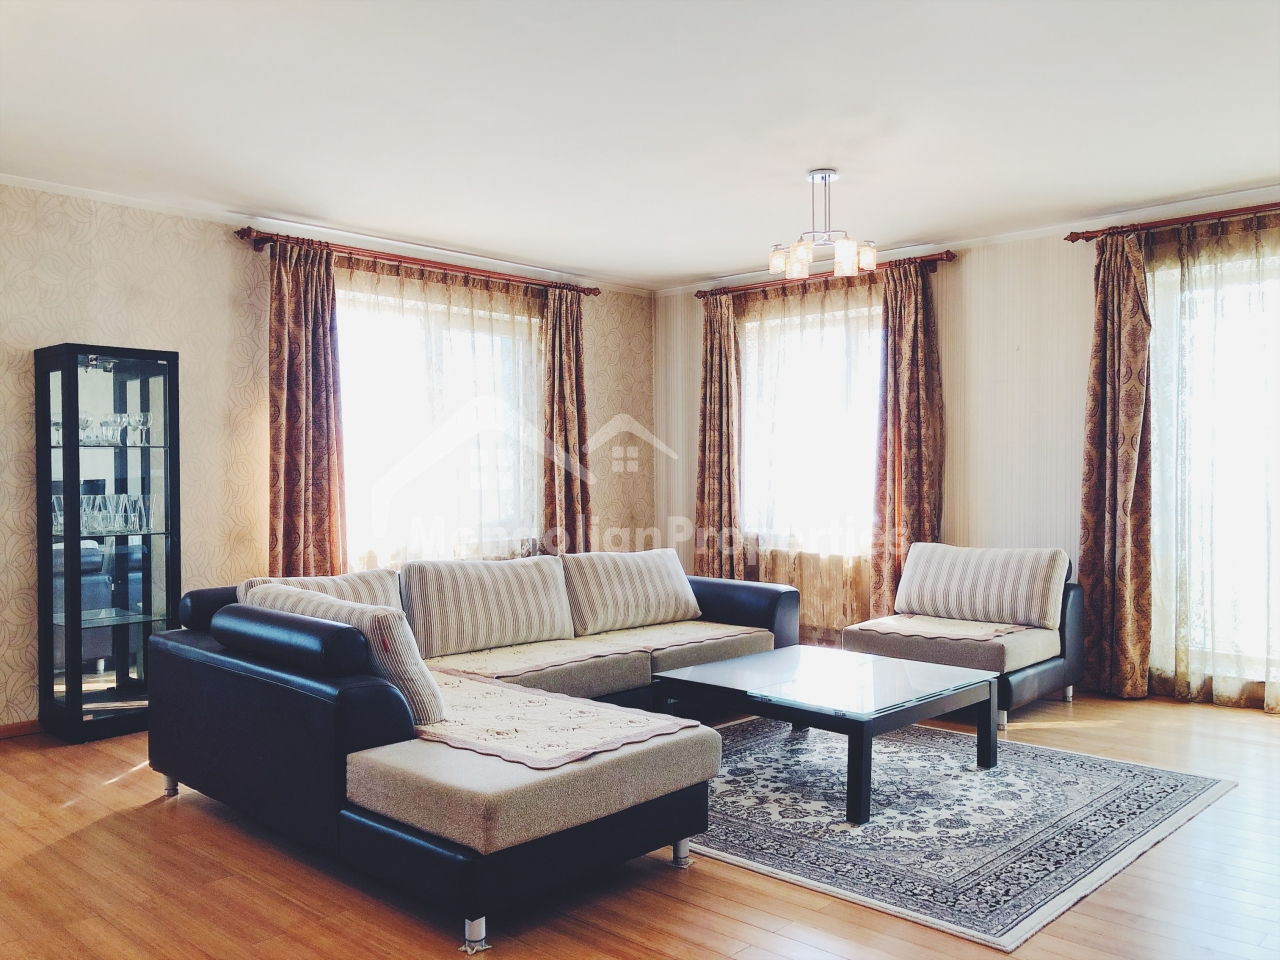 Spacious 3 bedroom with reasonable price